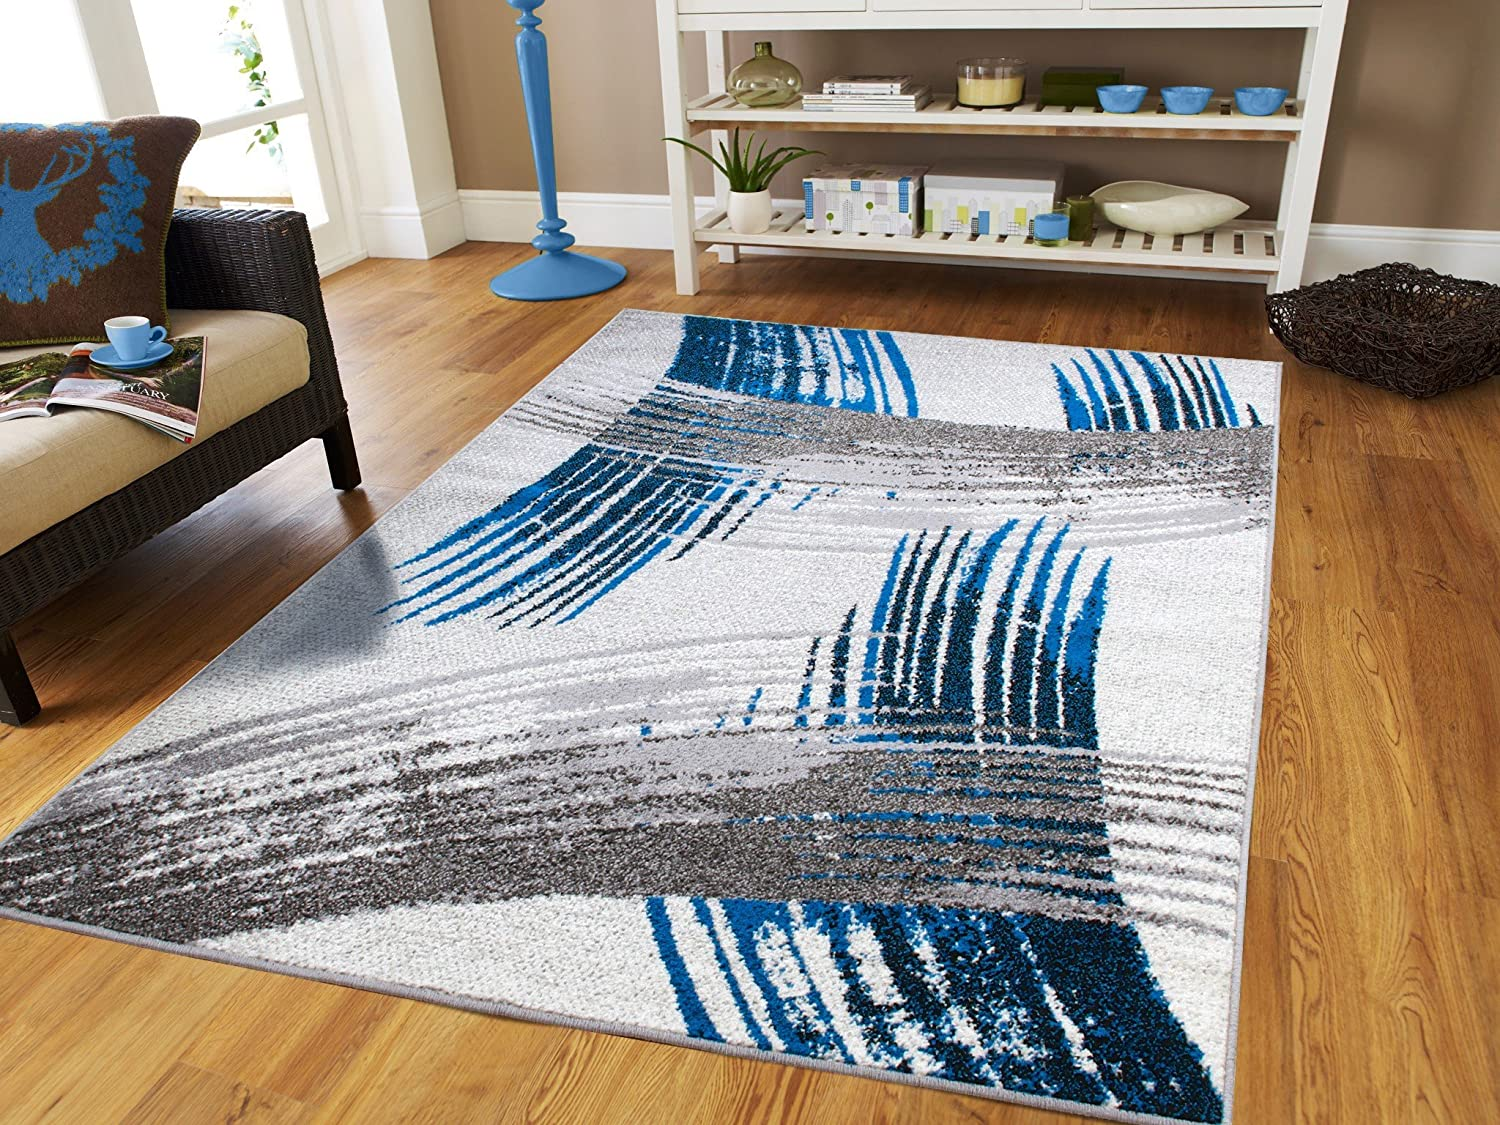 Amazon Luxury New Fashion Art Collection Contemporary Modern Rugs Splat Blue Black Cream Gray Large 8x11 Floor For Living Room And Kitchen 8x10